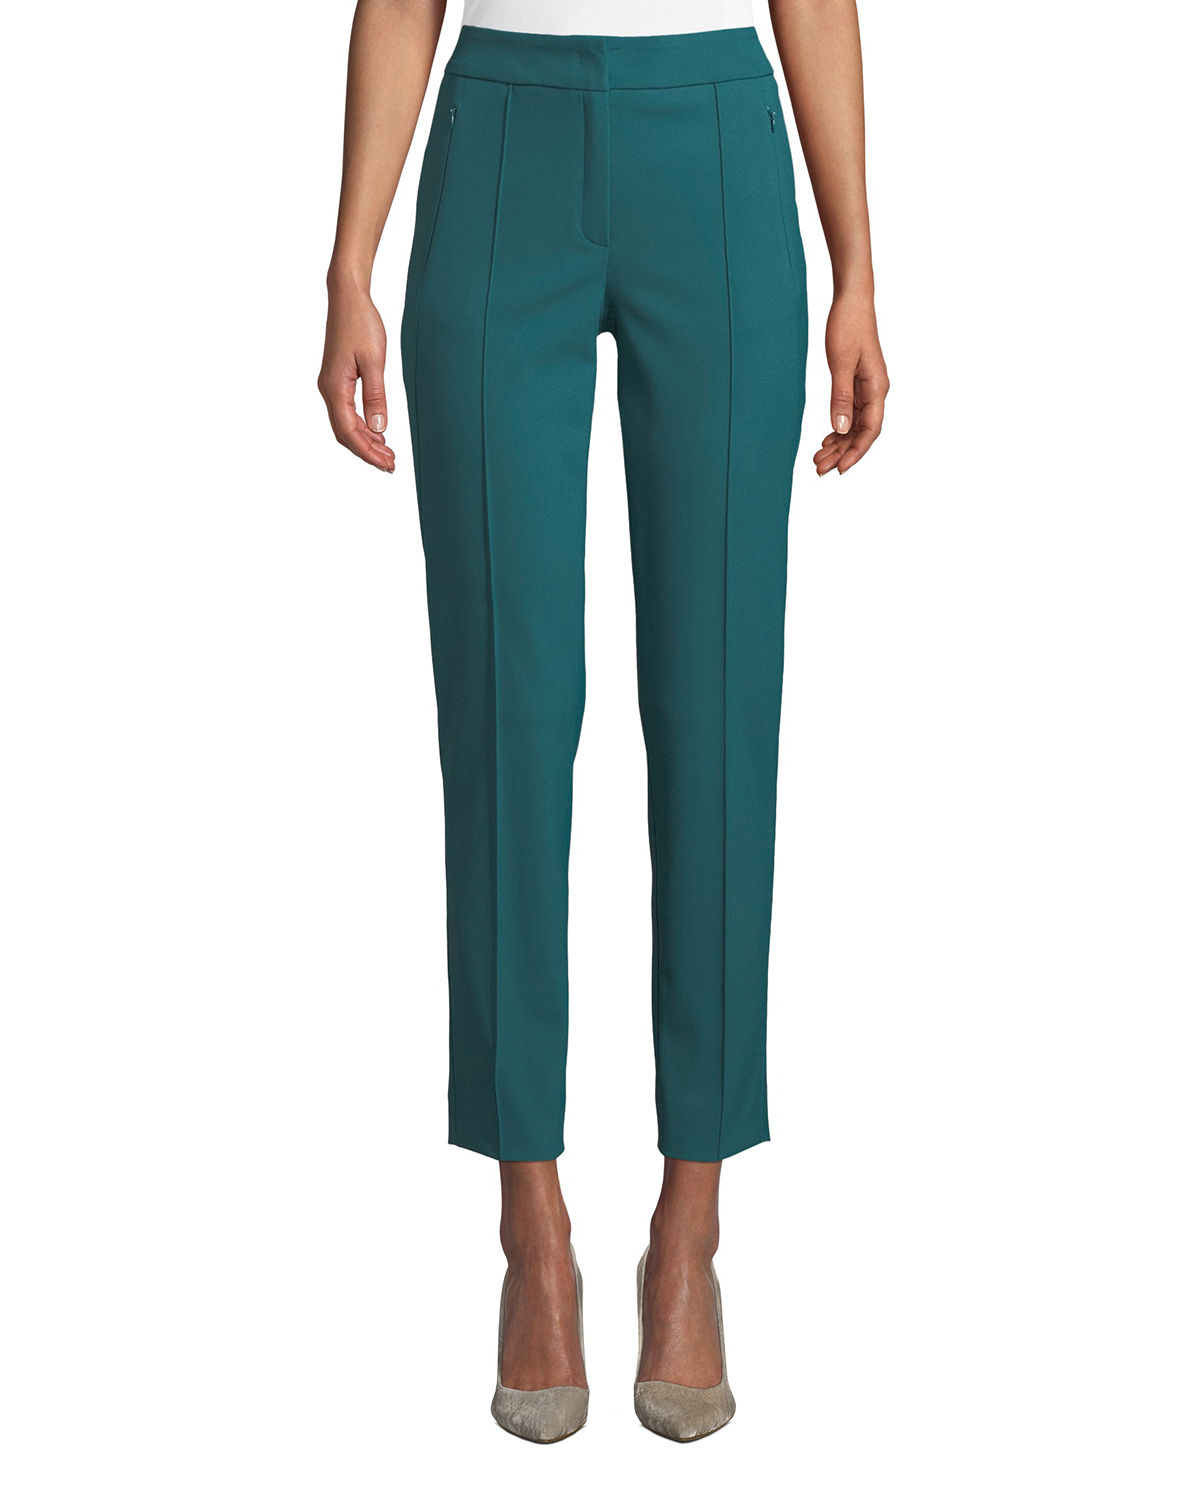 Tusko Straight-Leg Ankle Pants